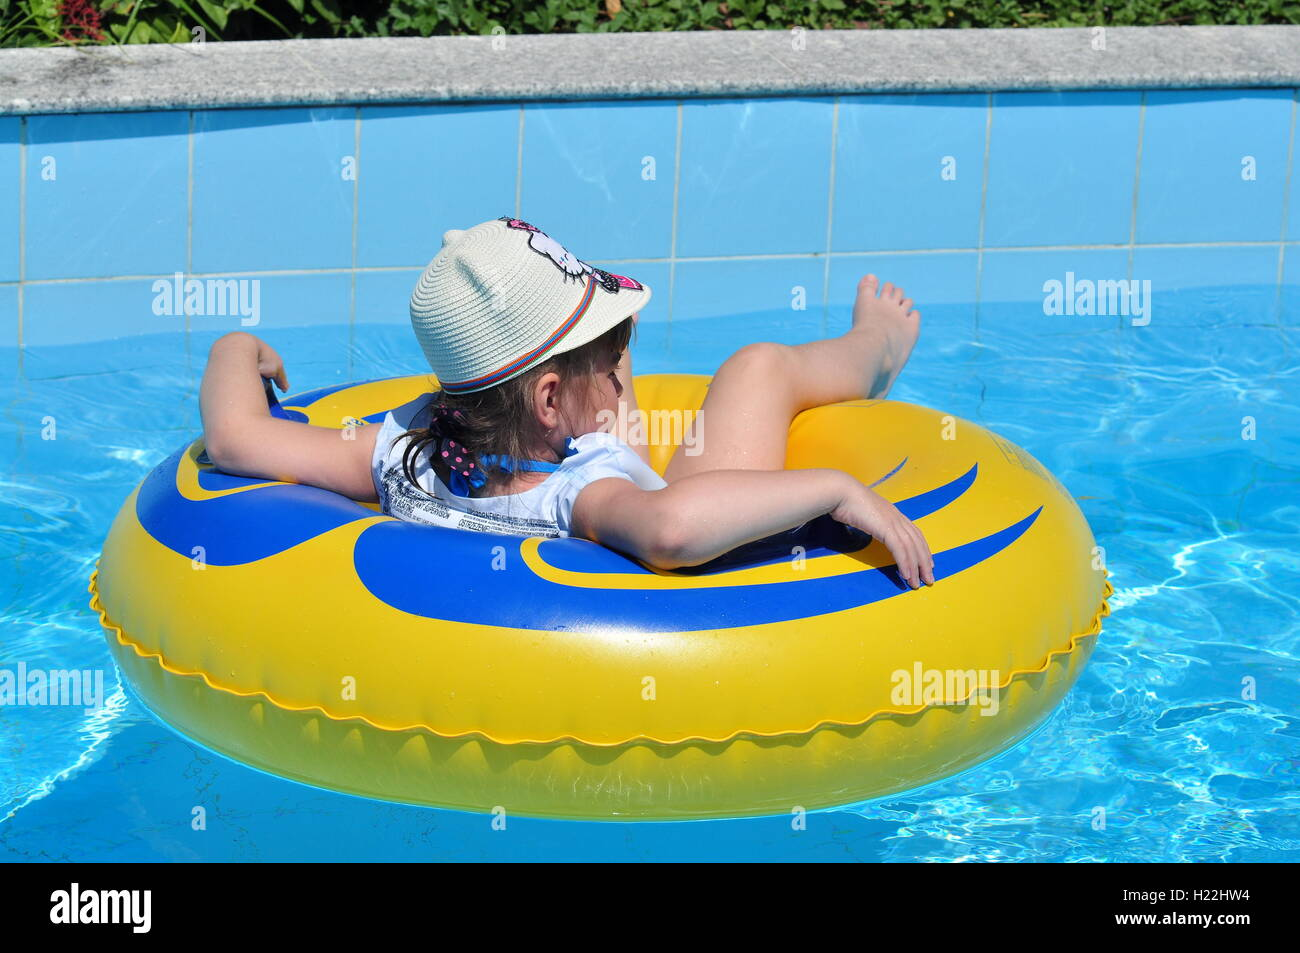 Nha Trang, Vietnam - October 30, 2015: A little girl is swimming in the waterpark of the Vinpearl Land - Stock Image